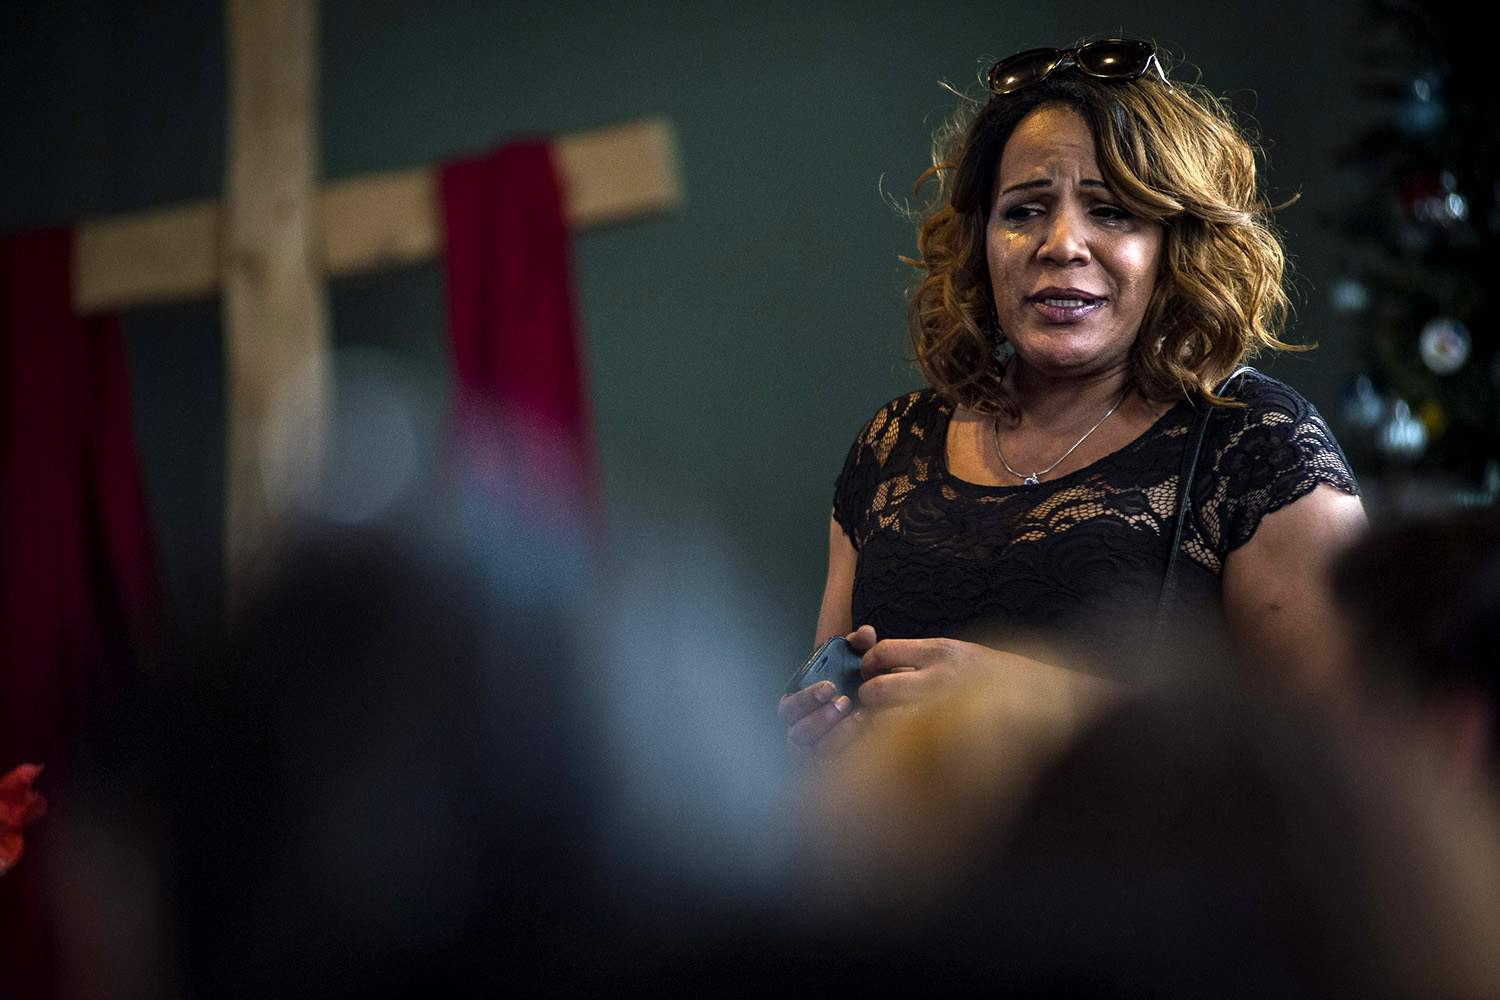 Monica Forrester, the program coordinator at Maggie's Toronto Sex Workers Action Project, speaks emotionally during a memorial service for Alloura Wells, a trans woman who had gone missing and was then found dead in one of the city's woodland ravines, Toronto, Tuesday, December 12, 2017. Forrester, a trans woman herself, has long advocated for transgender people.